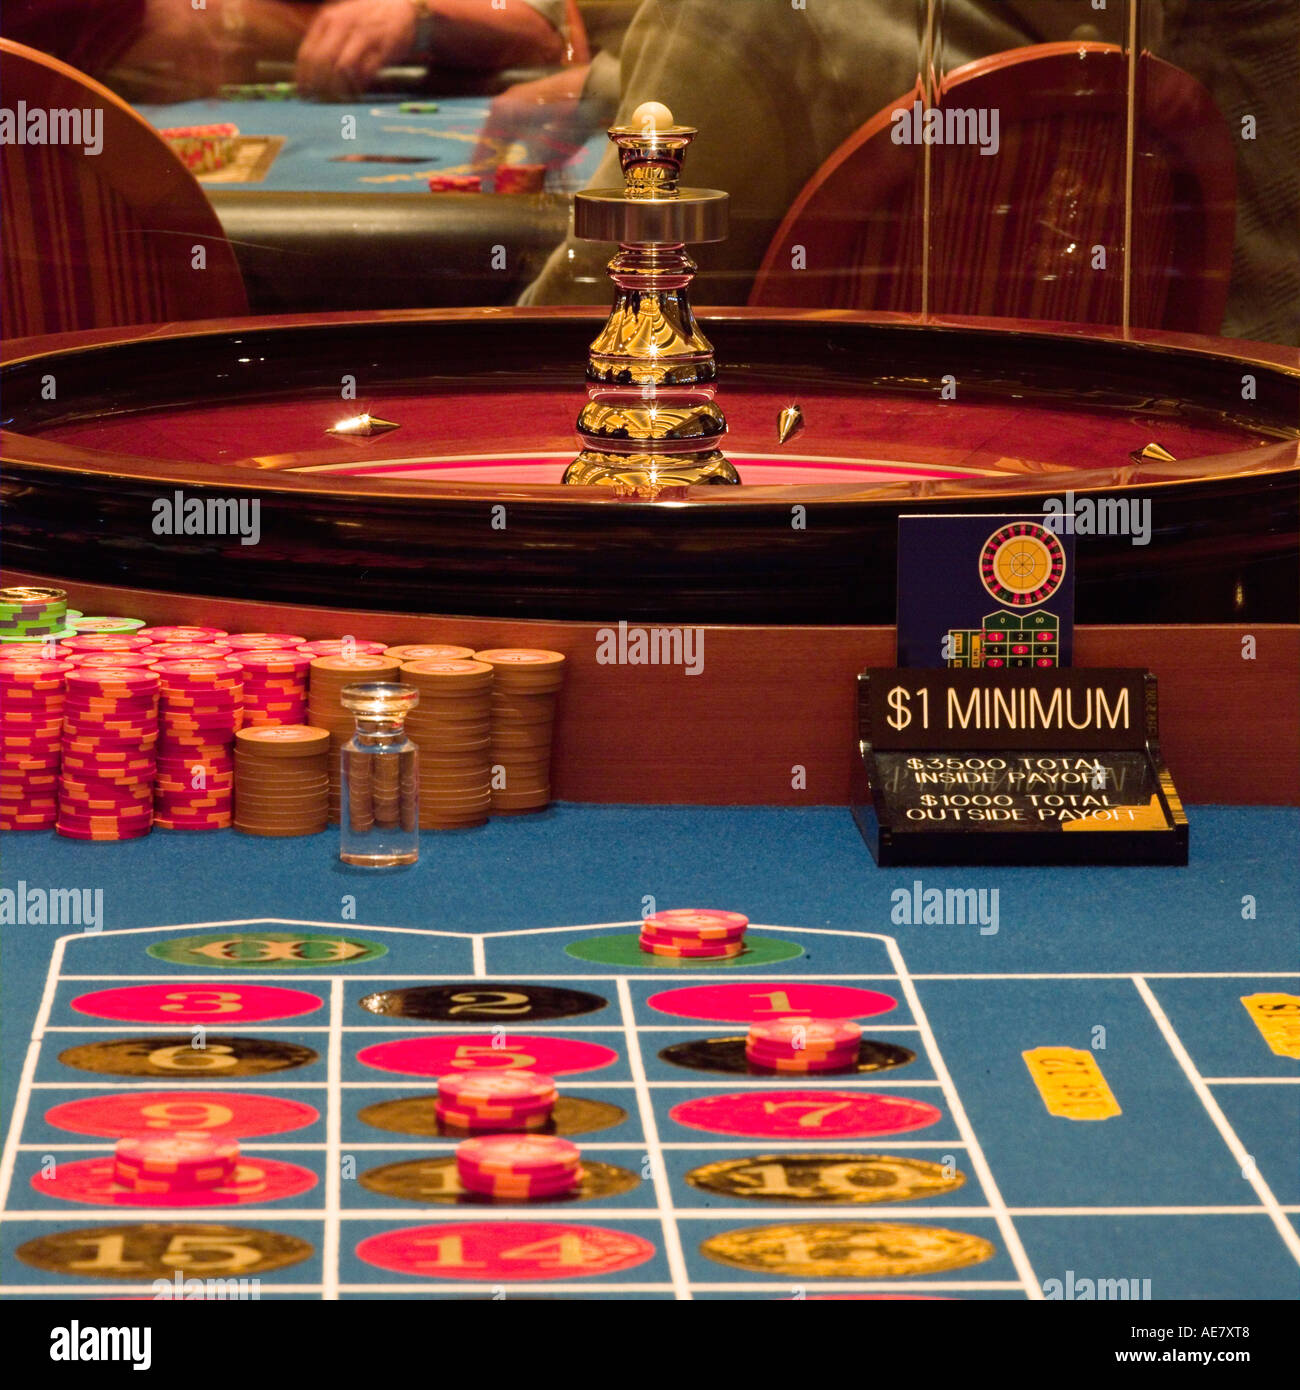 Play craps online free with people